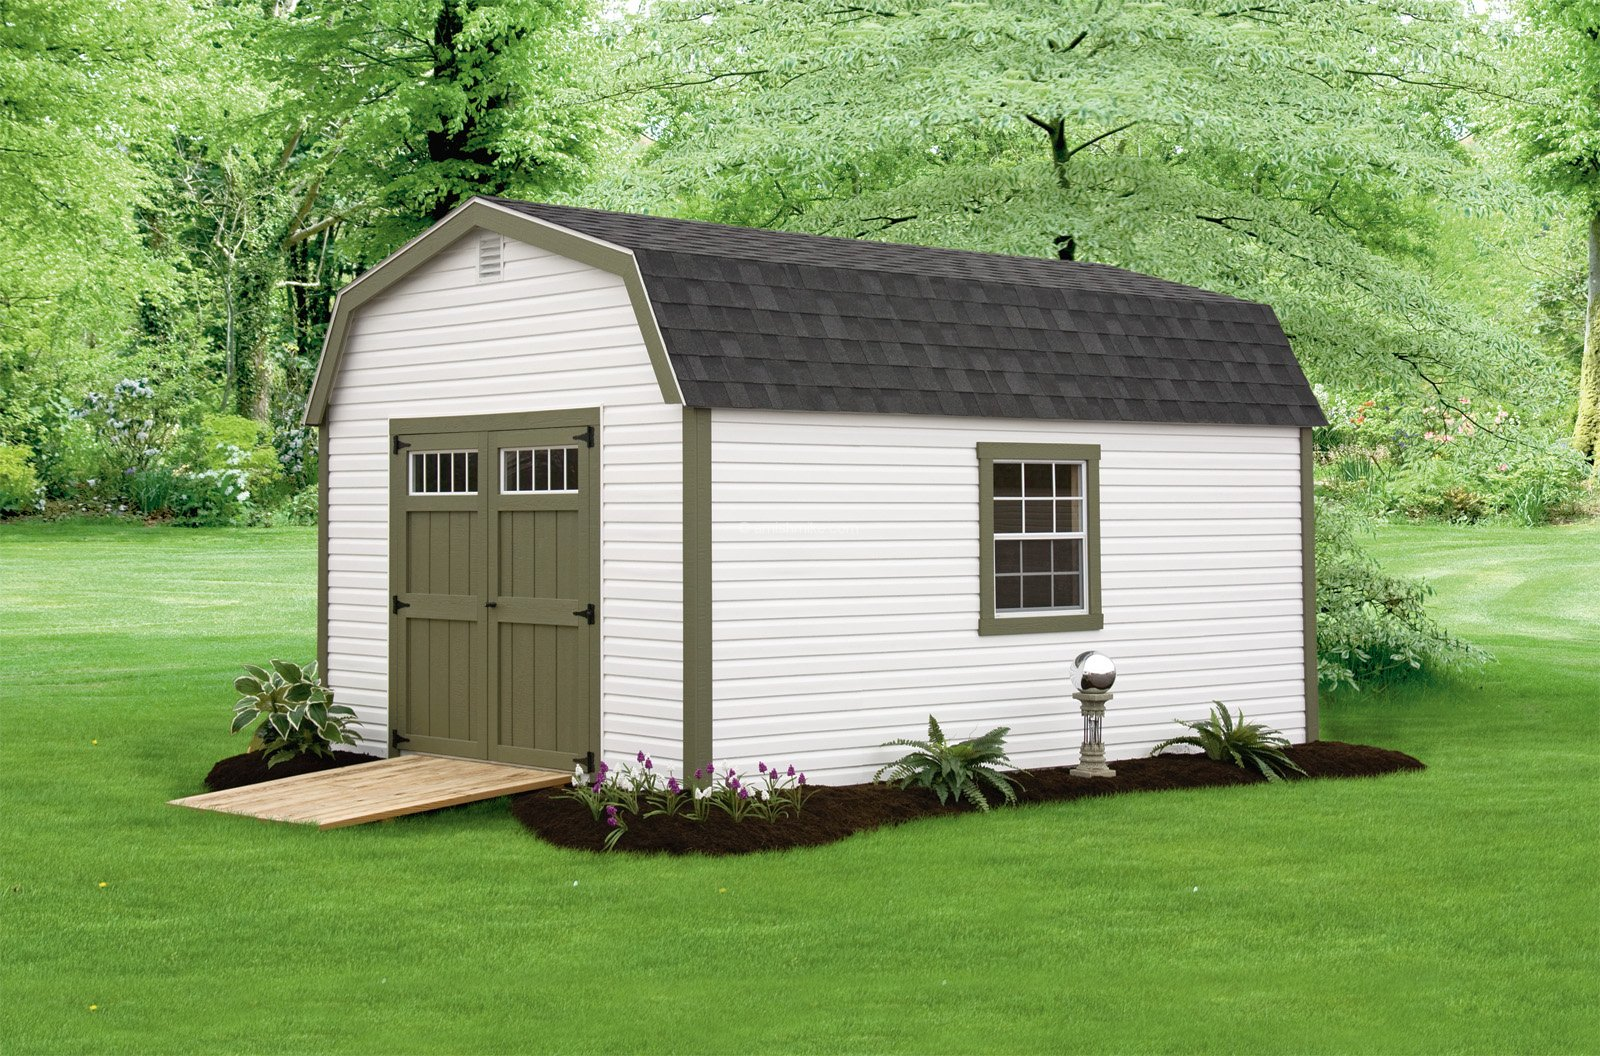 10 x 16 traditional irish garden shed - Garden Sheds Nj